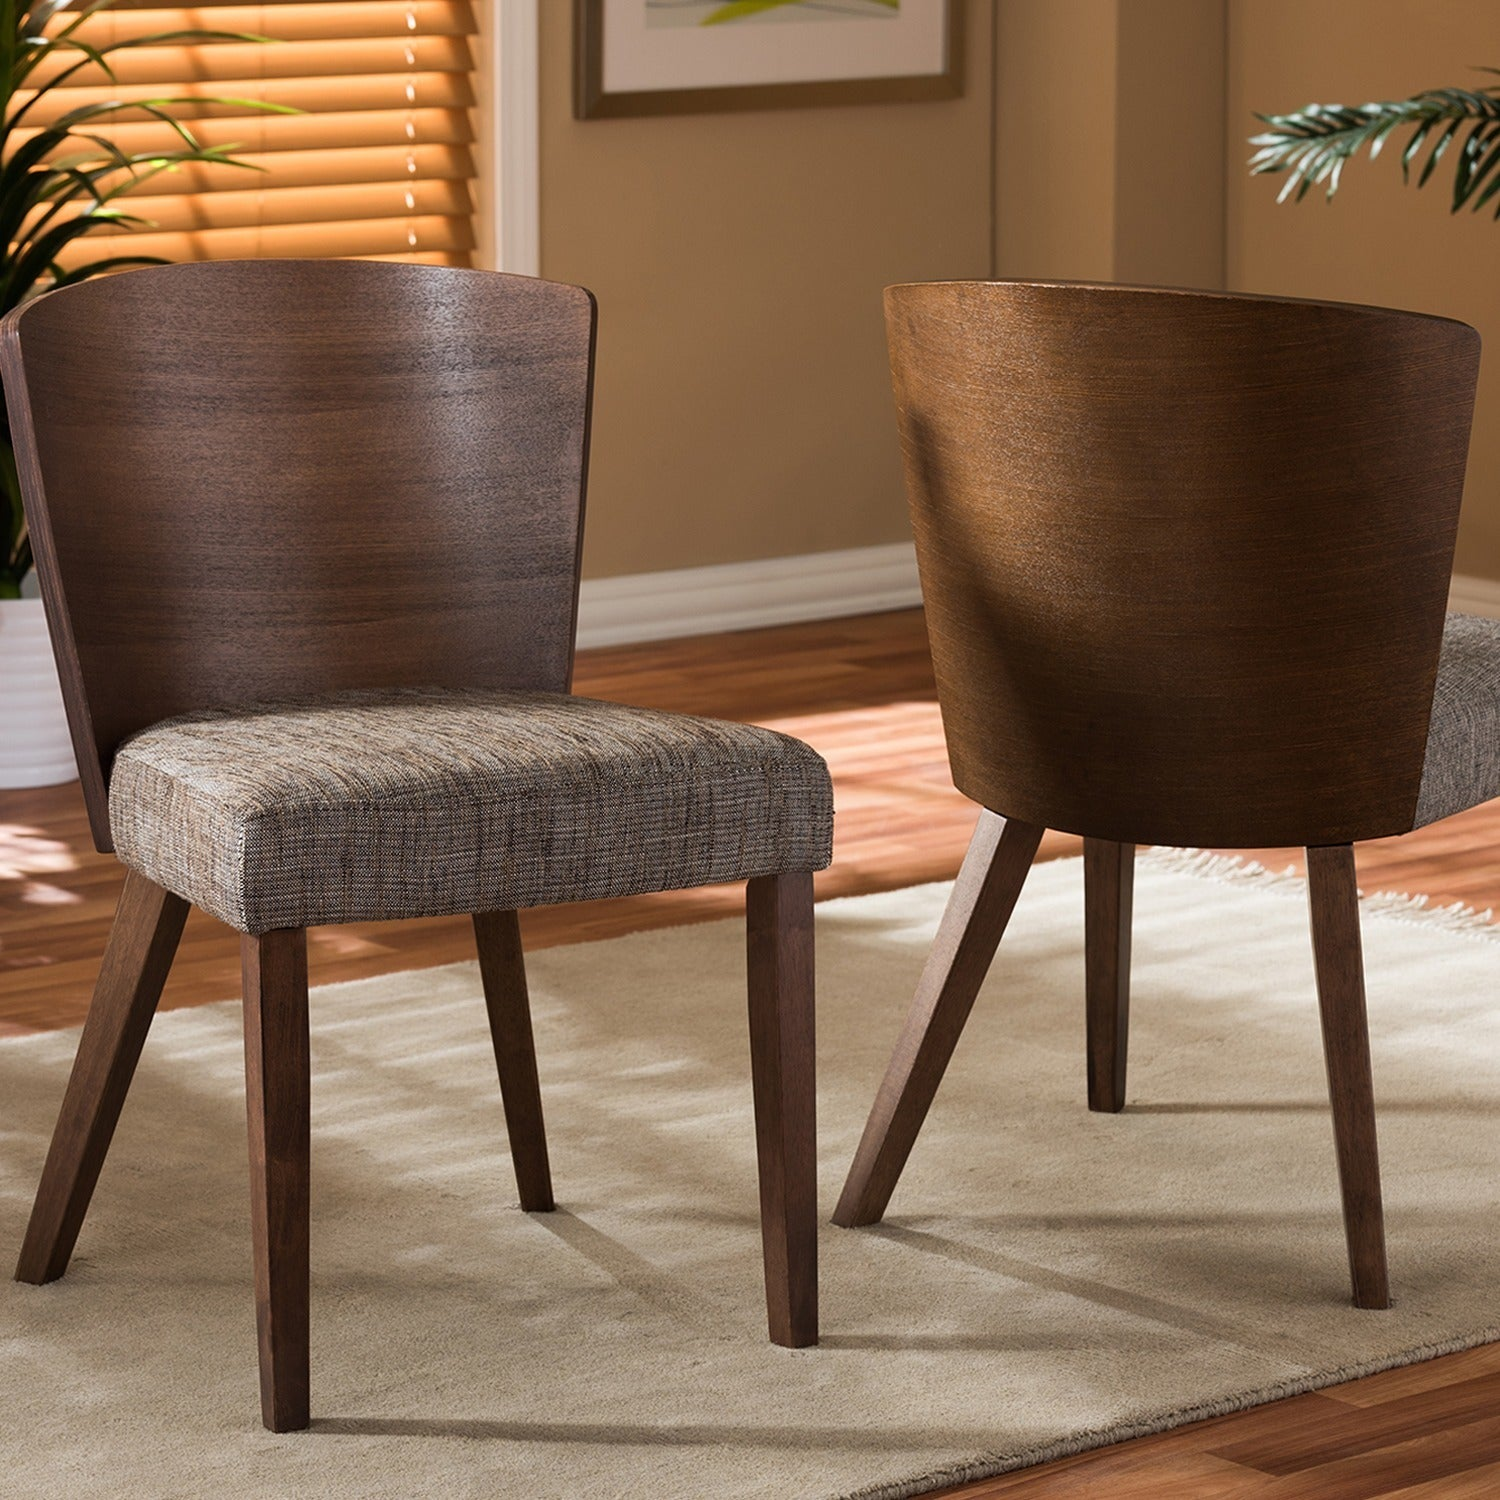 Shop Baxton Studio Mid Century 2 Piece Gravel Brown/Grey Fabric And Walnut  Wood Dining Chair Set   On Sale   Free Shipping Today   Overstock.com    8458975